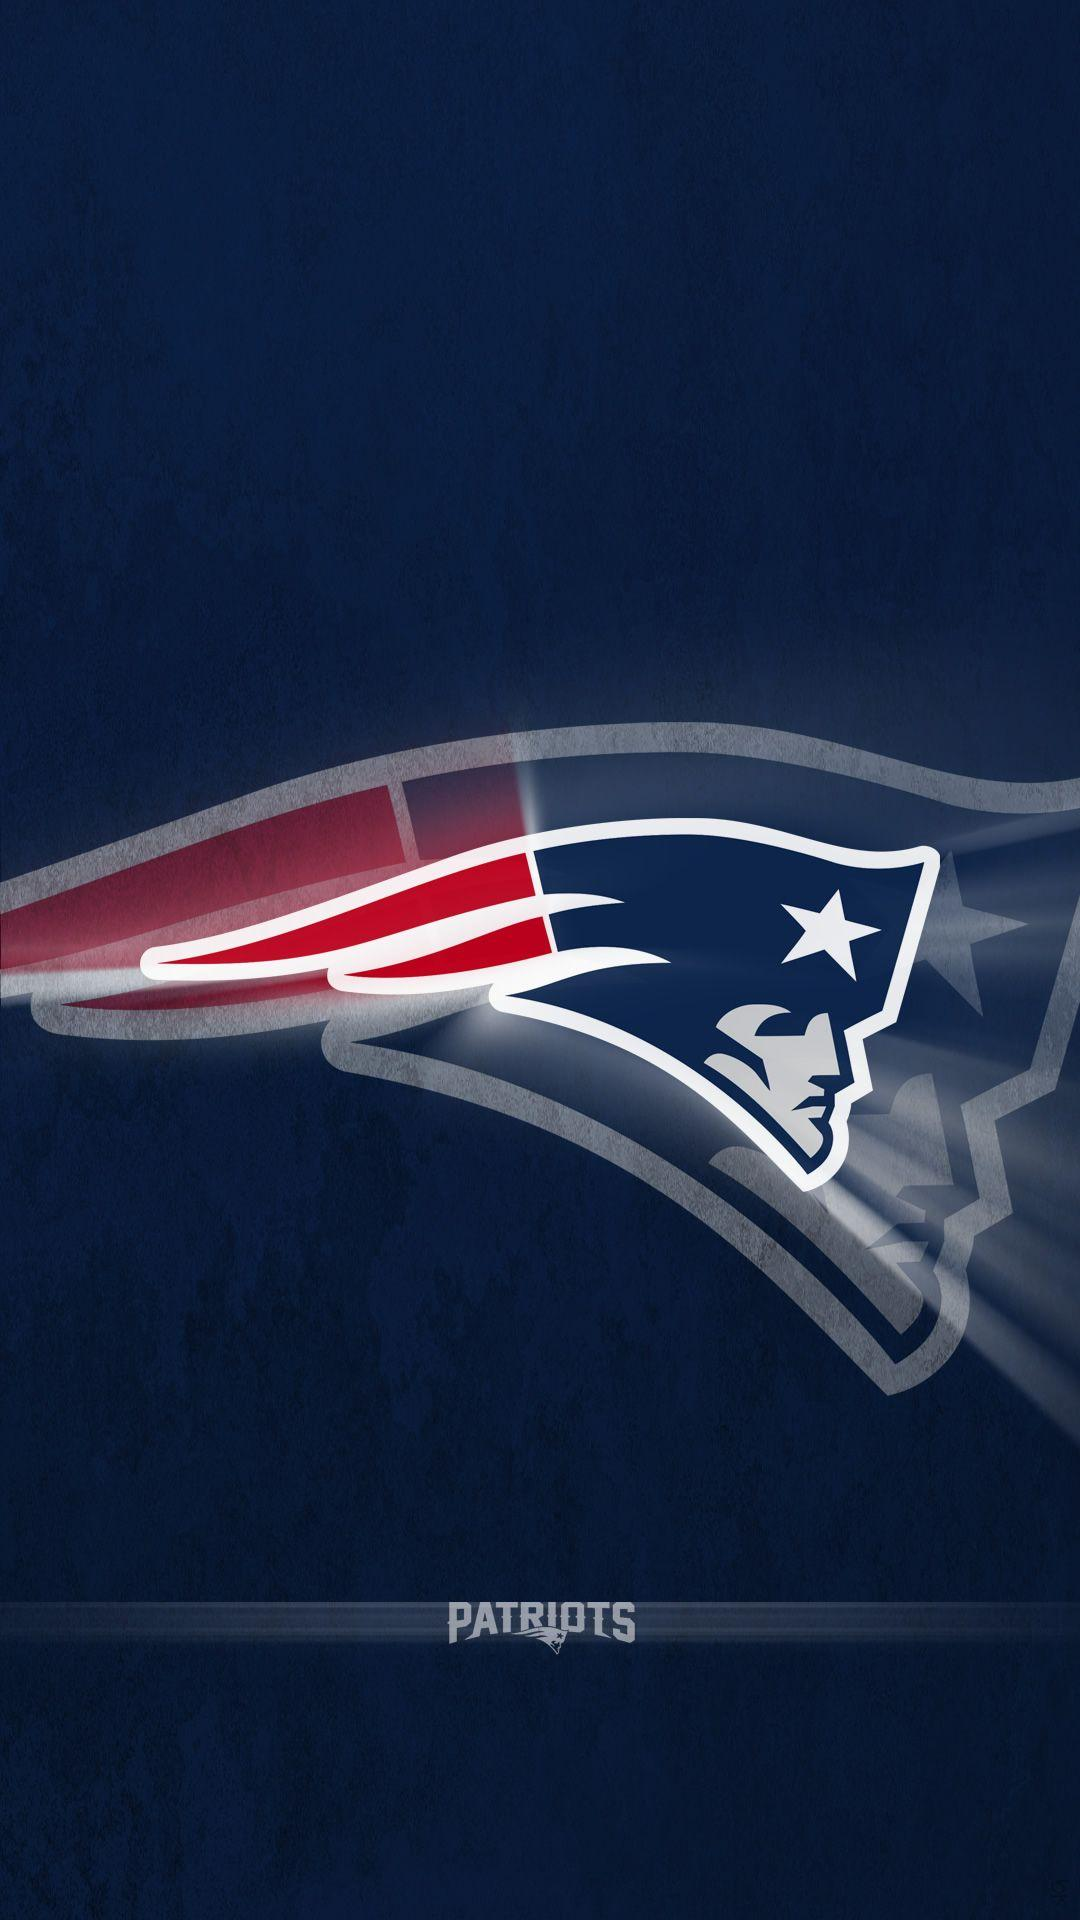 New England Patriots 2016 Wallpaper – WallpaperSafari